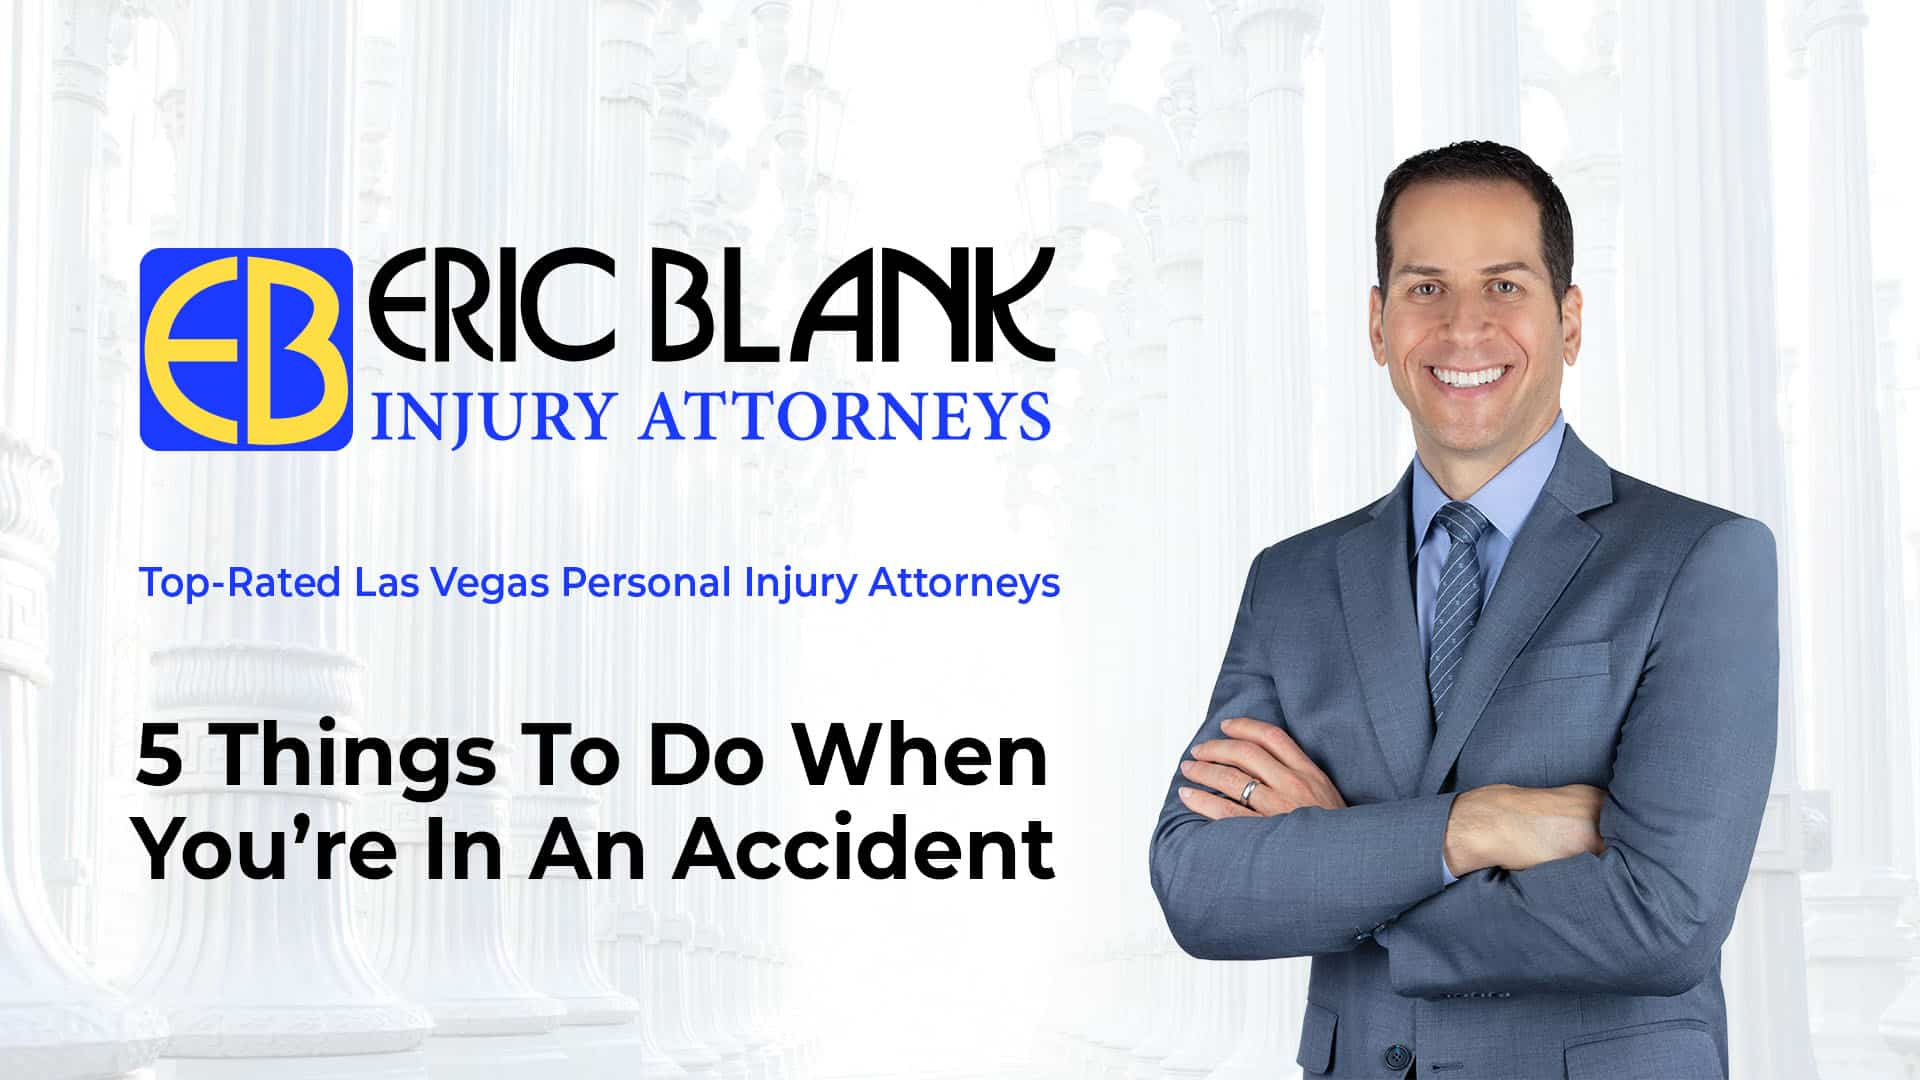 5 things to do in an accident - eric blank injury attorneys